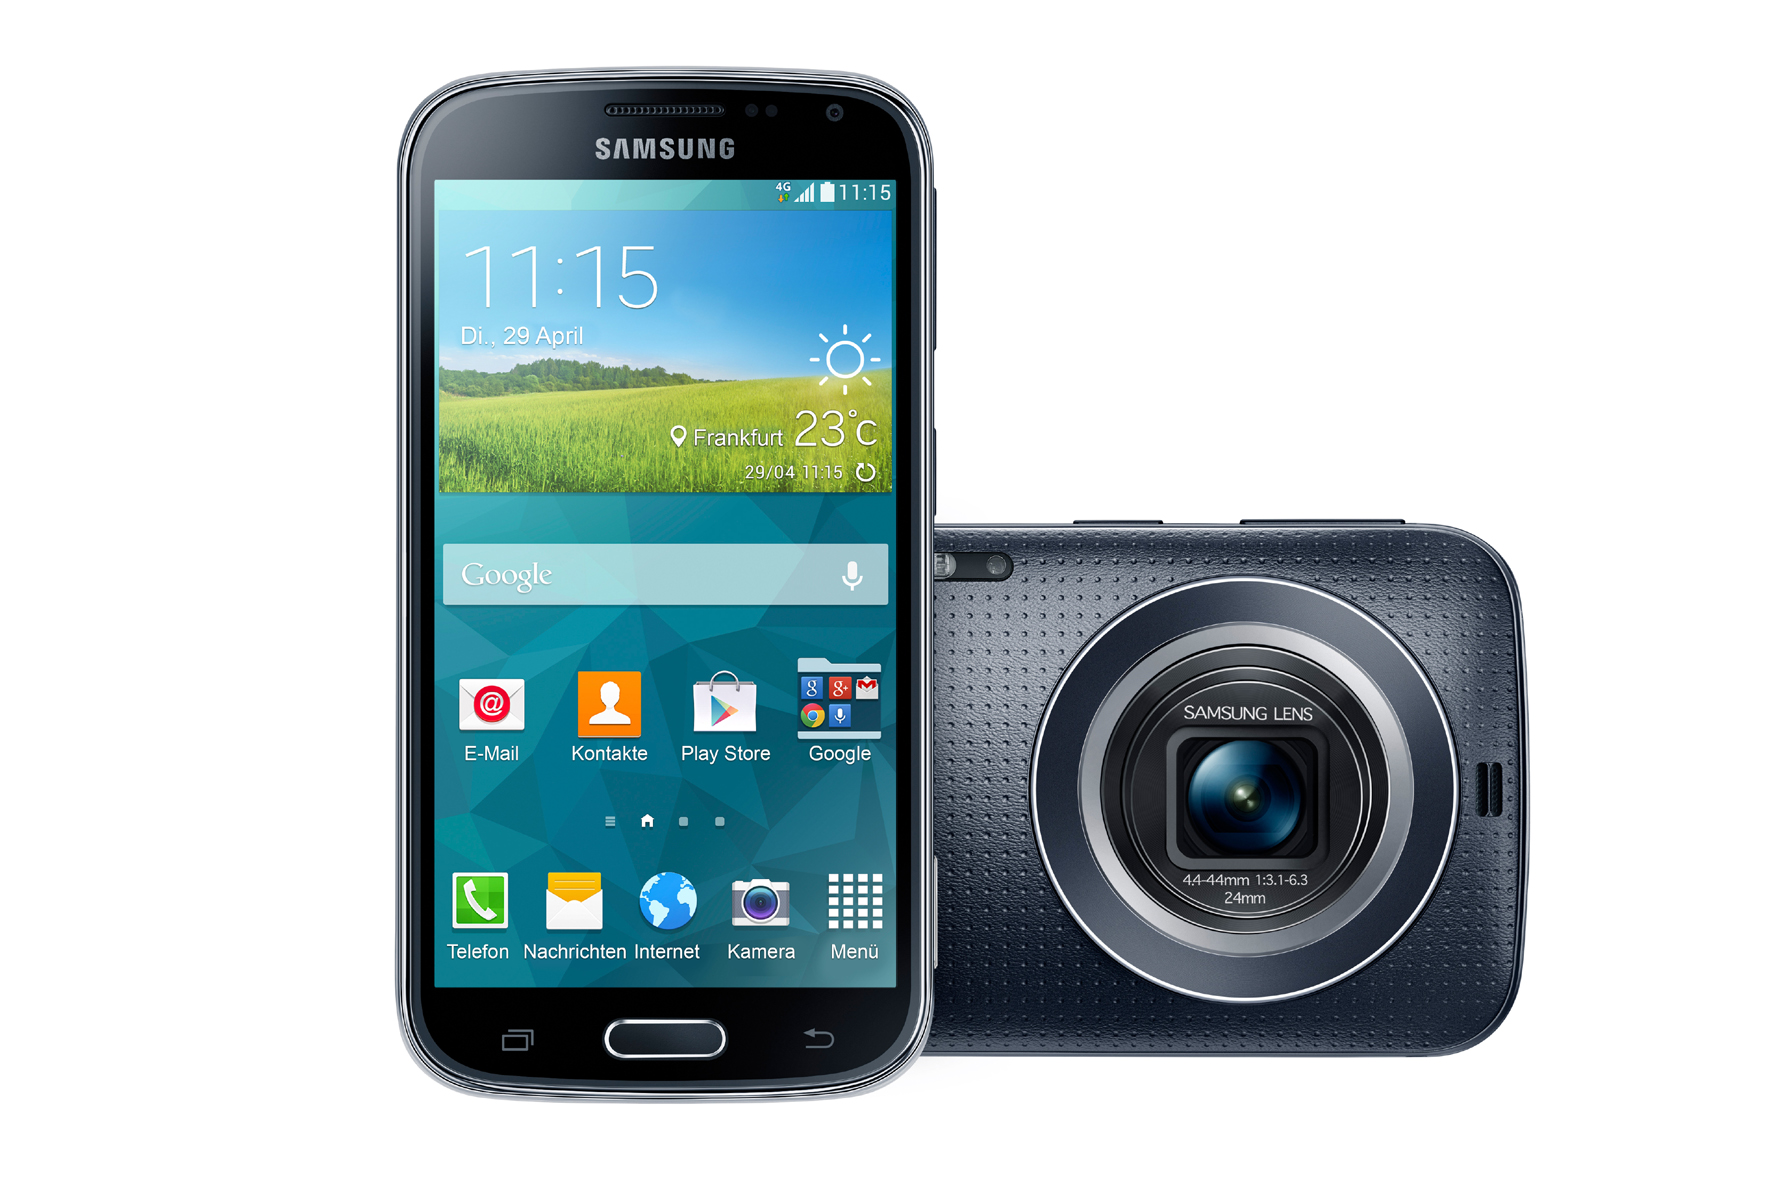 035922_Samsung GALAXY K zoom_(SM-C115)_charcoal-black_180_quer_Front